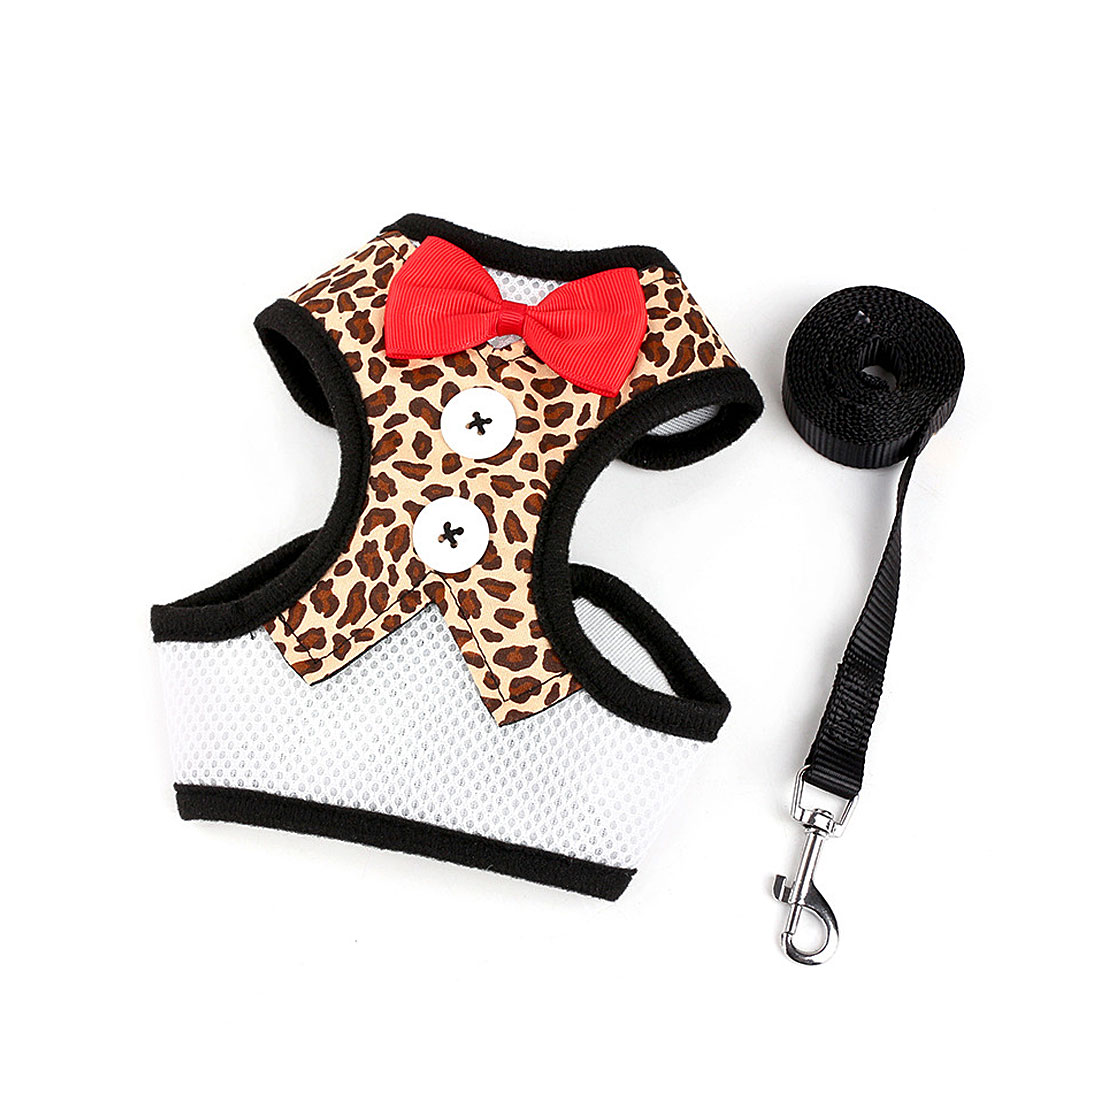 Adjustable Padded Small Dog Harness Breathable Dog Vest Bowtie Gentleman Suit Leopard L